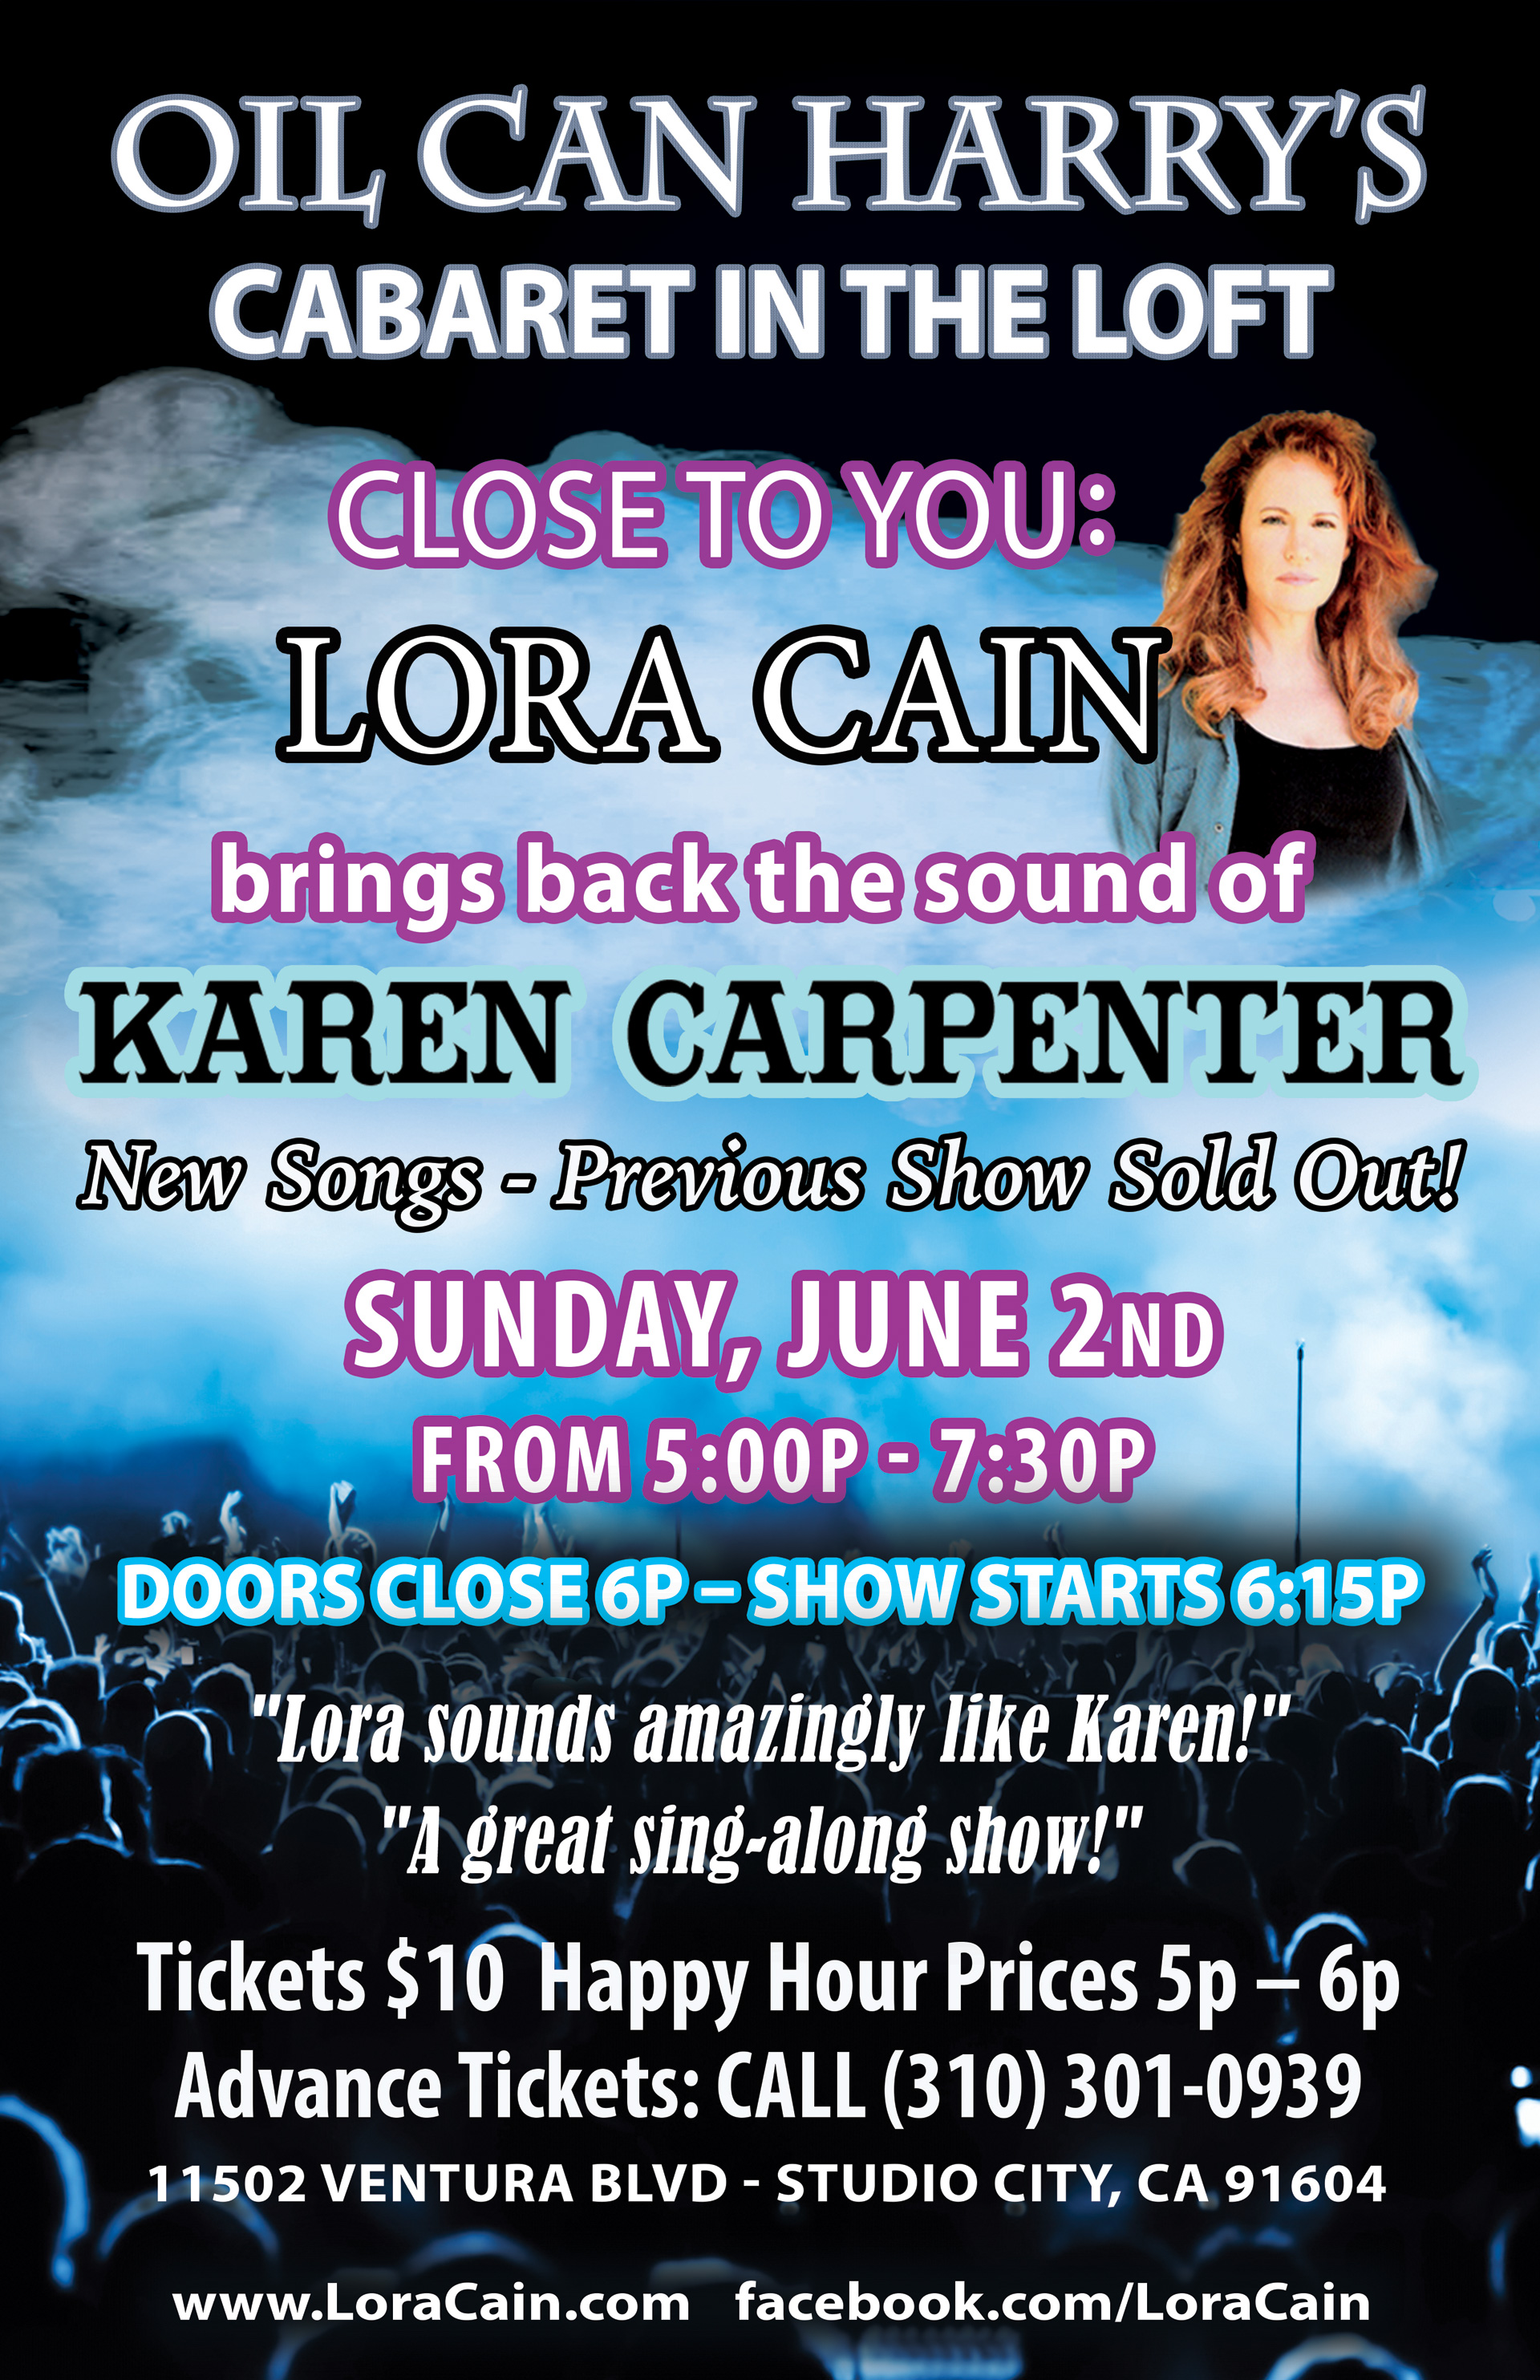 Oil Can Harry's Presents LORA CAIN Singing The Songs of Karen Carpenter in The Loft: Sunday, 06/02/19 from 5:00 PM to 7:30 PM. Happy Hour Prices from 5:00 PM to 6:00 PM! Show starts at 6:15 PM! $10 Cover.